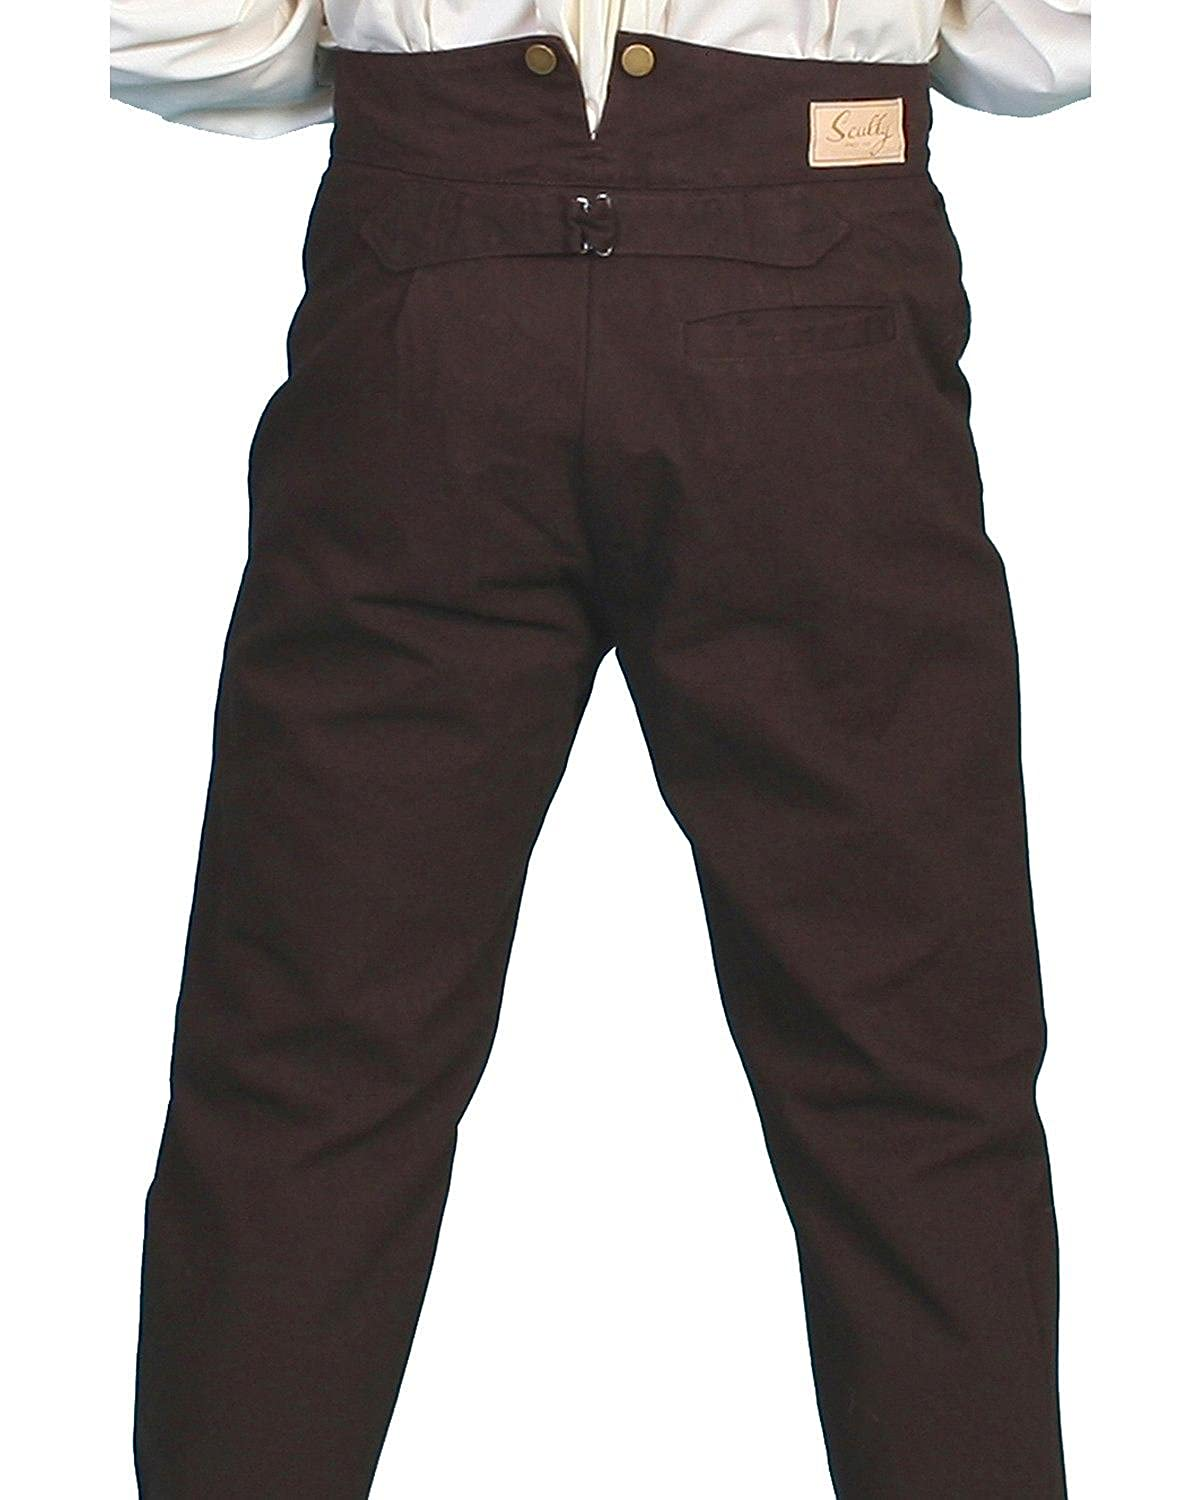 Dress in Great Gatsby Clothes for Men Scully Rangewear Mens Rangewear Canvas Pants $51.90 AT vintagedancer.com